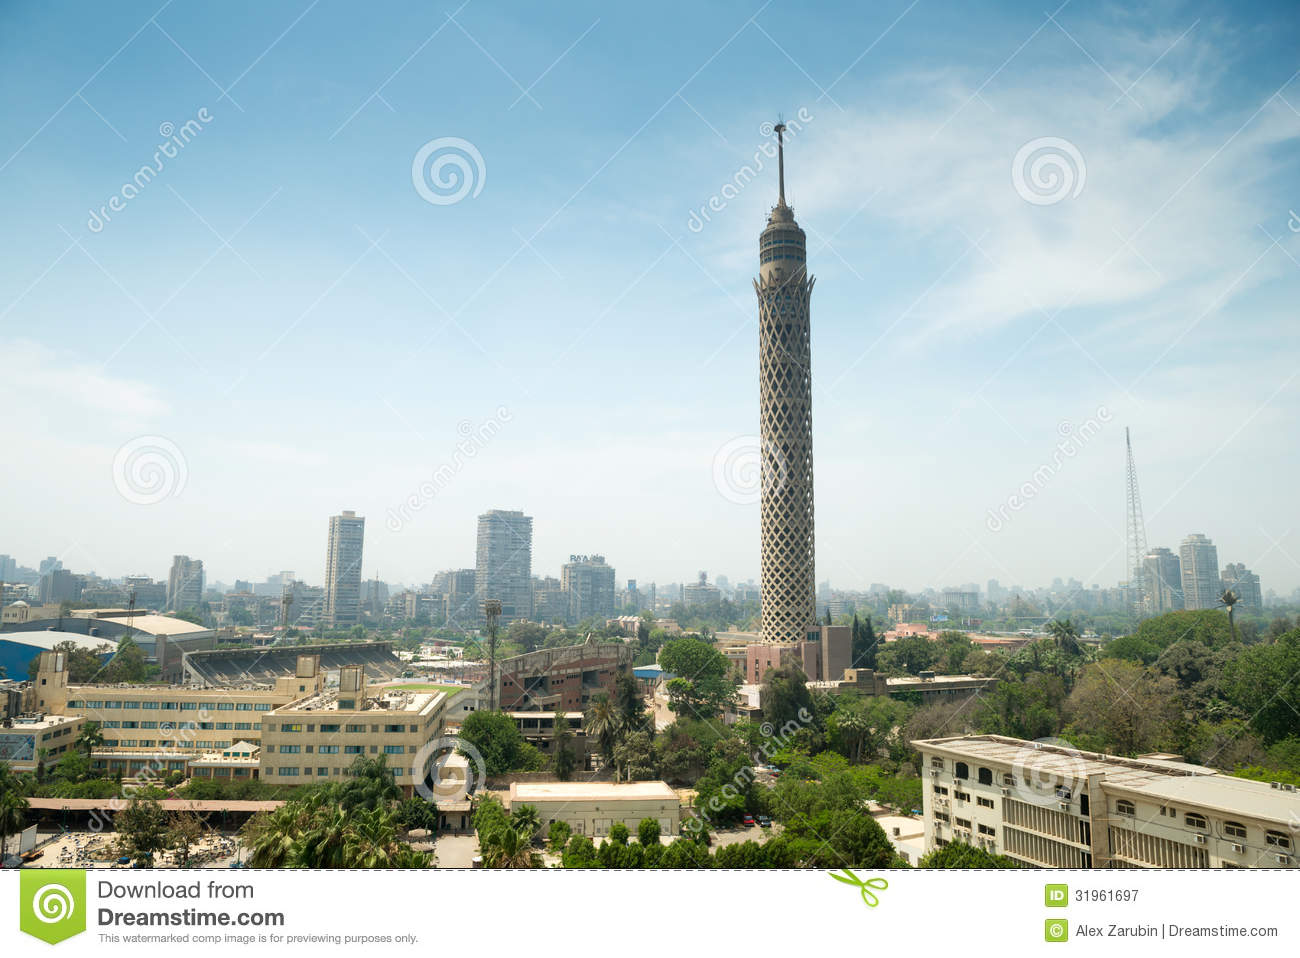 City view of Cairo tower